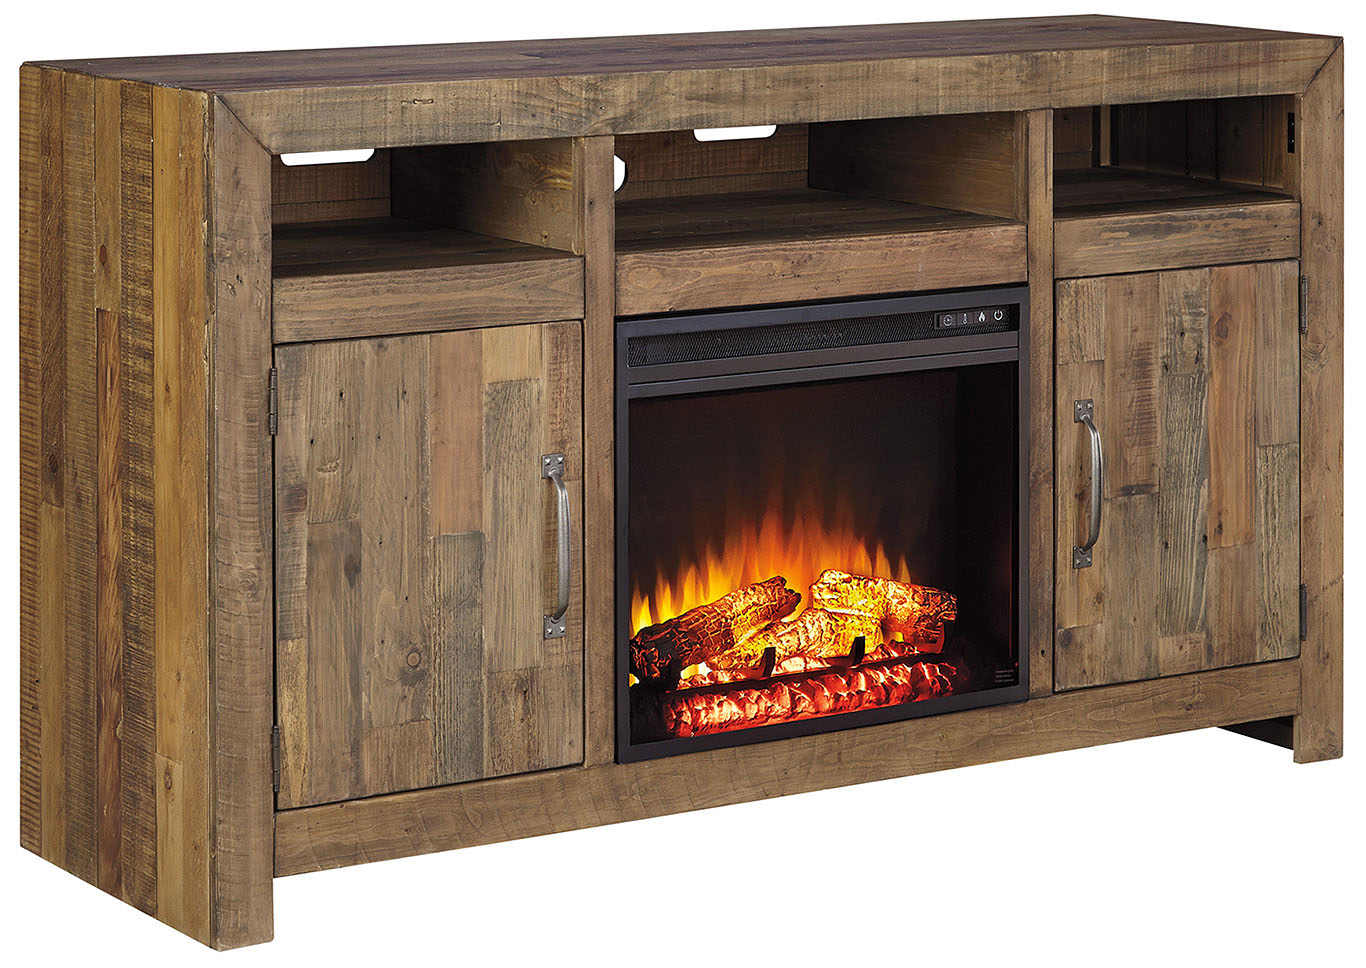 Sommerford Brown LG TV Stand w/Fireplace,Signature Design By Ashley